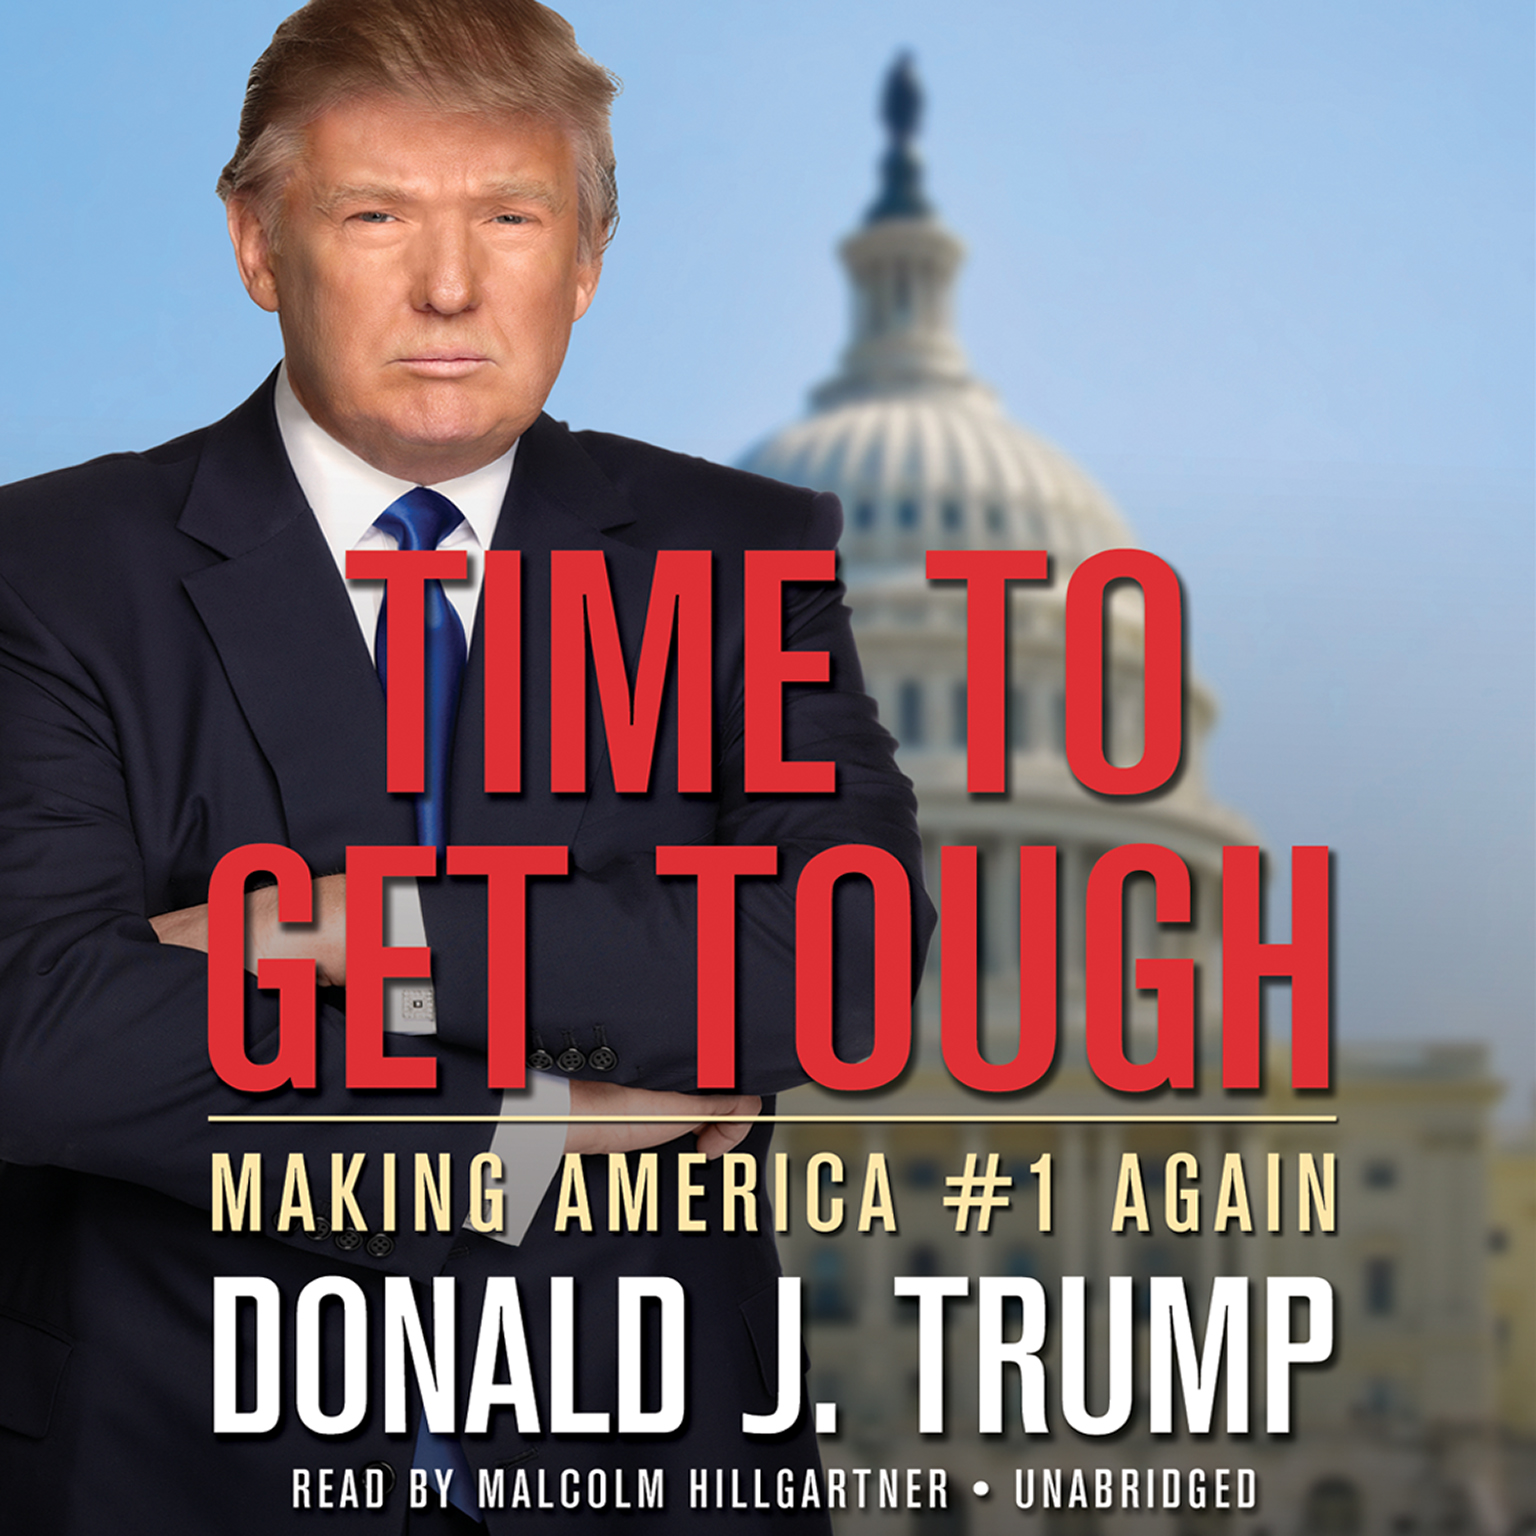 Time to Get Tough: Making America #1 Again - Donald J. Trump - reviews, quotes, summary